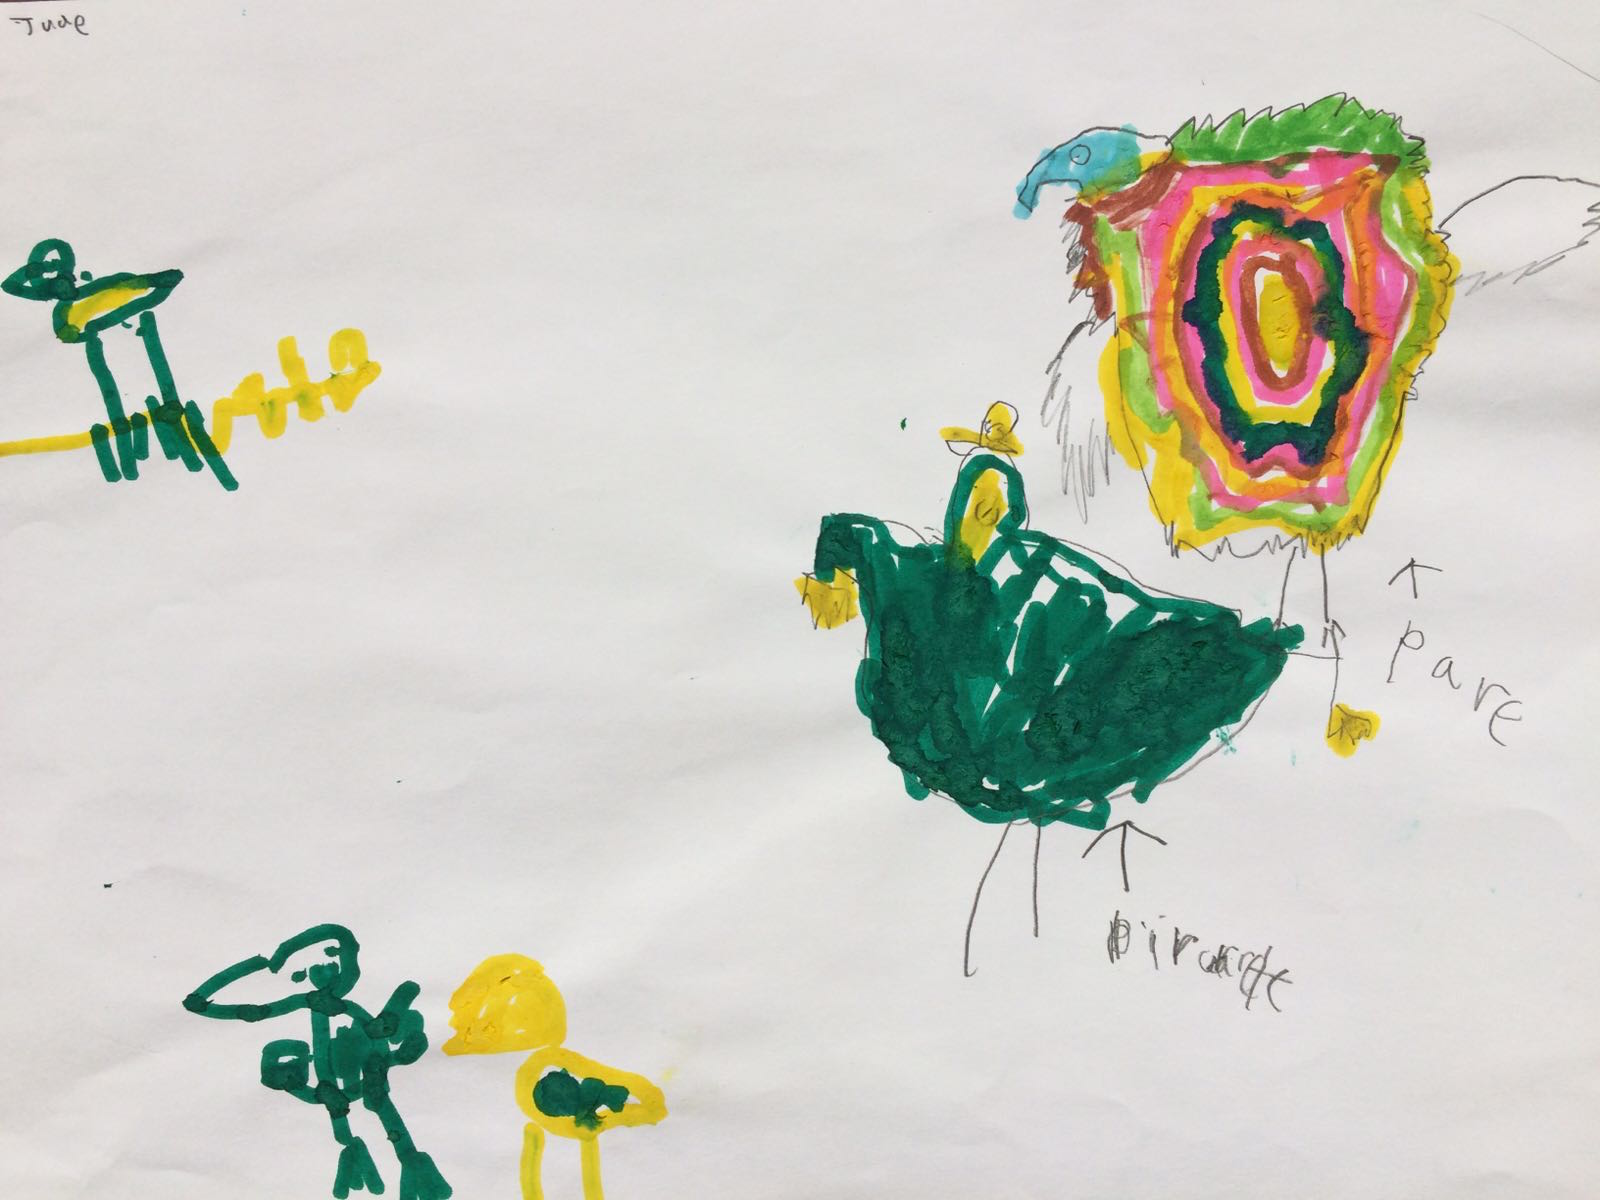 Different parrots, by Jude